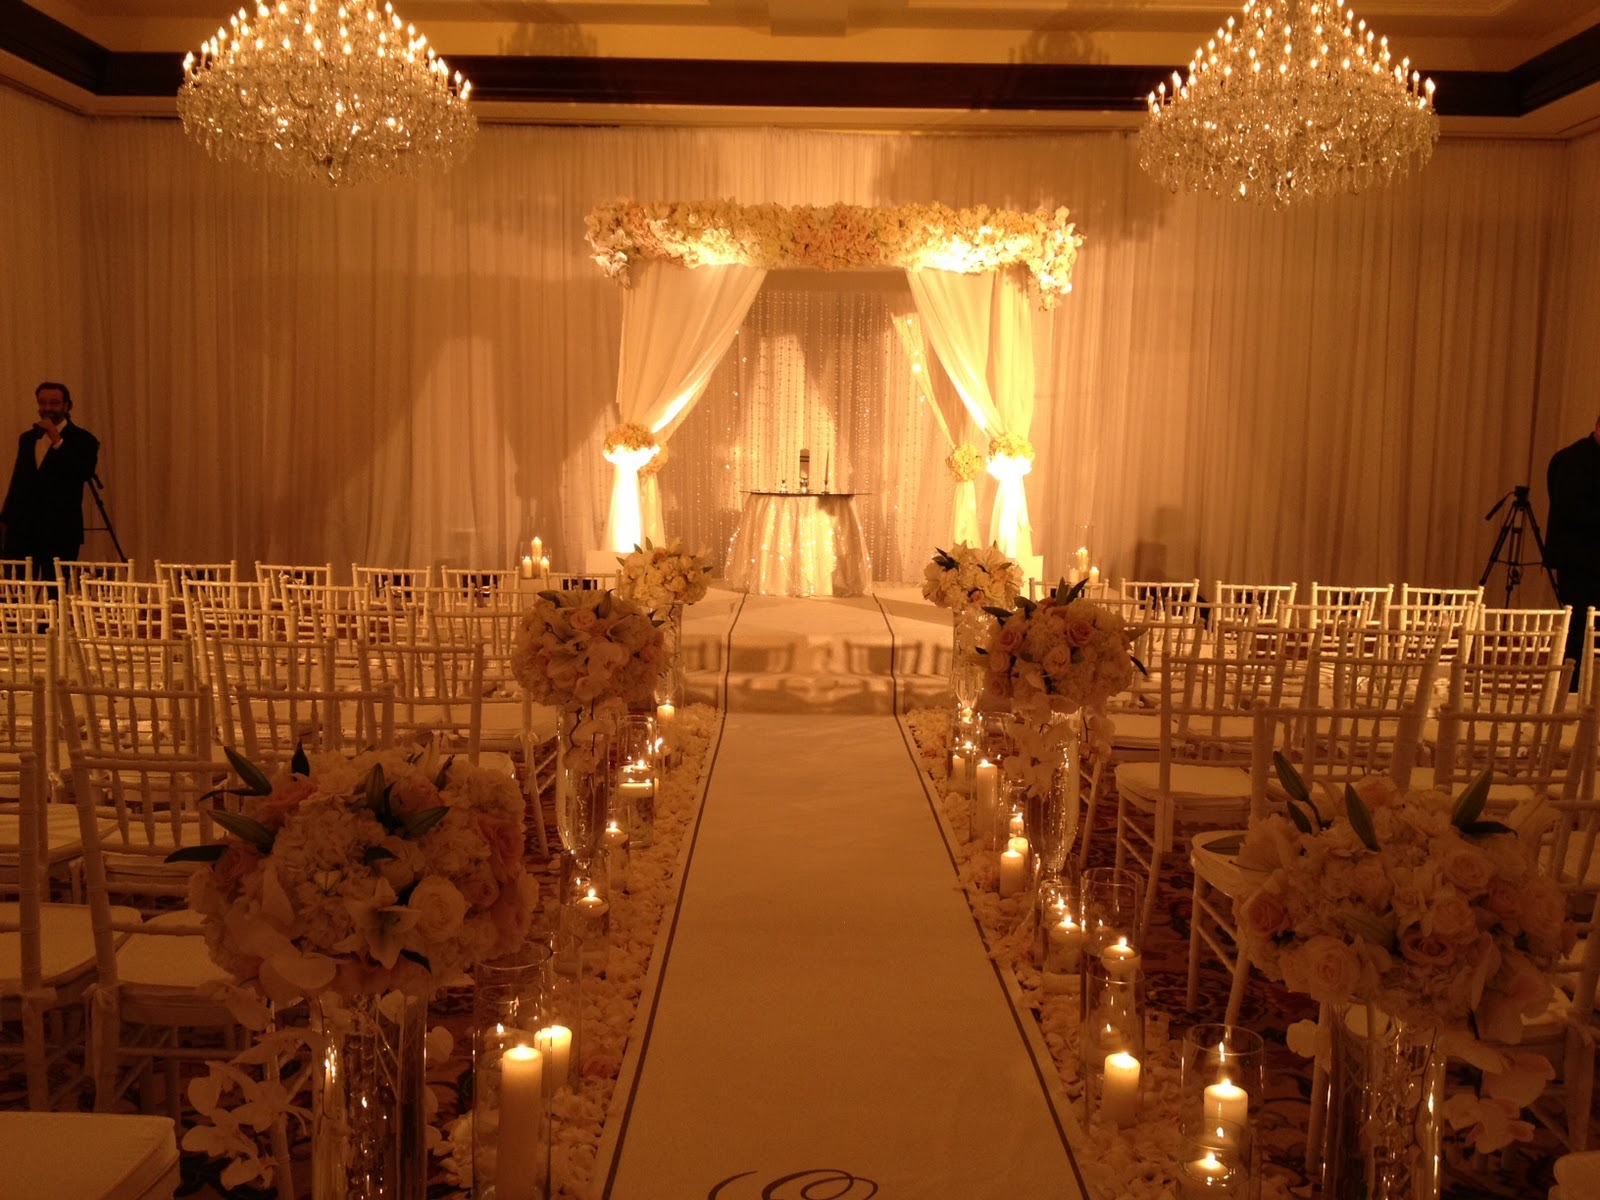 Mary dann 39 s blog a spectacular wedding at four seasons for Indoor light decoration ideas